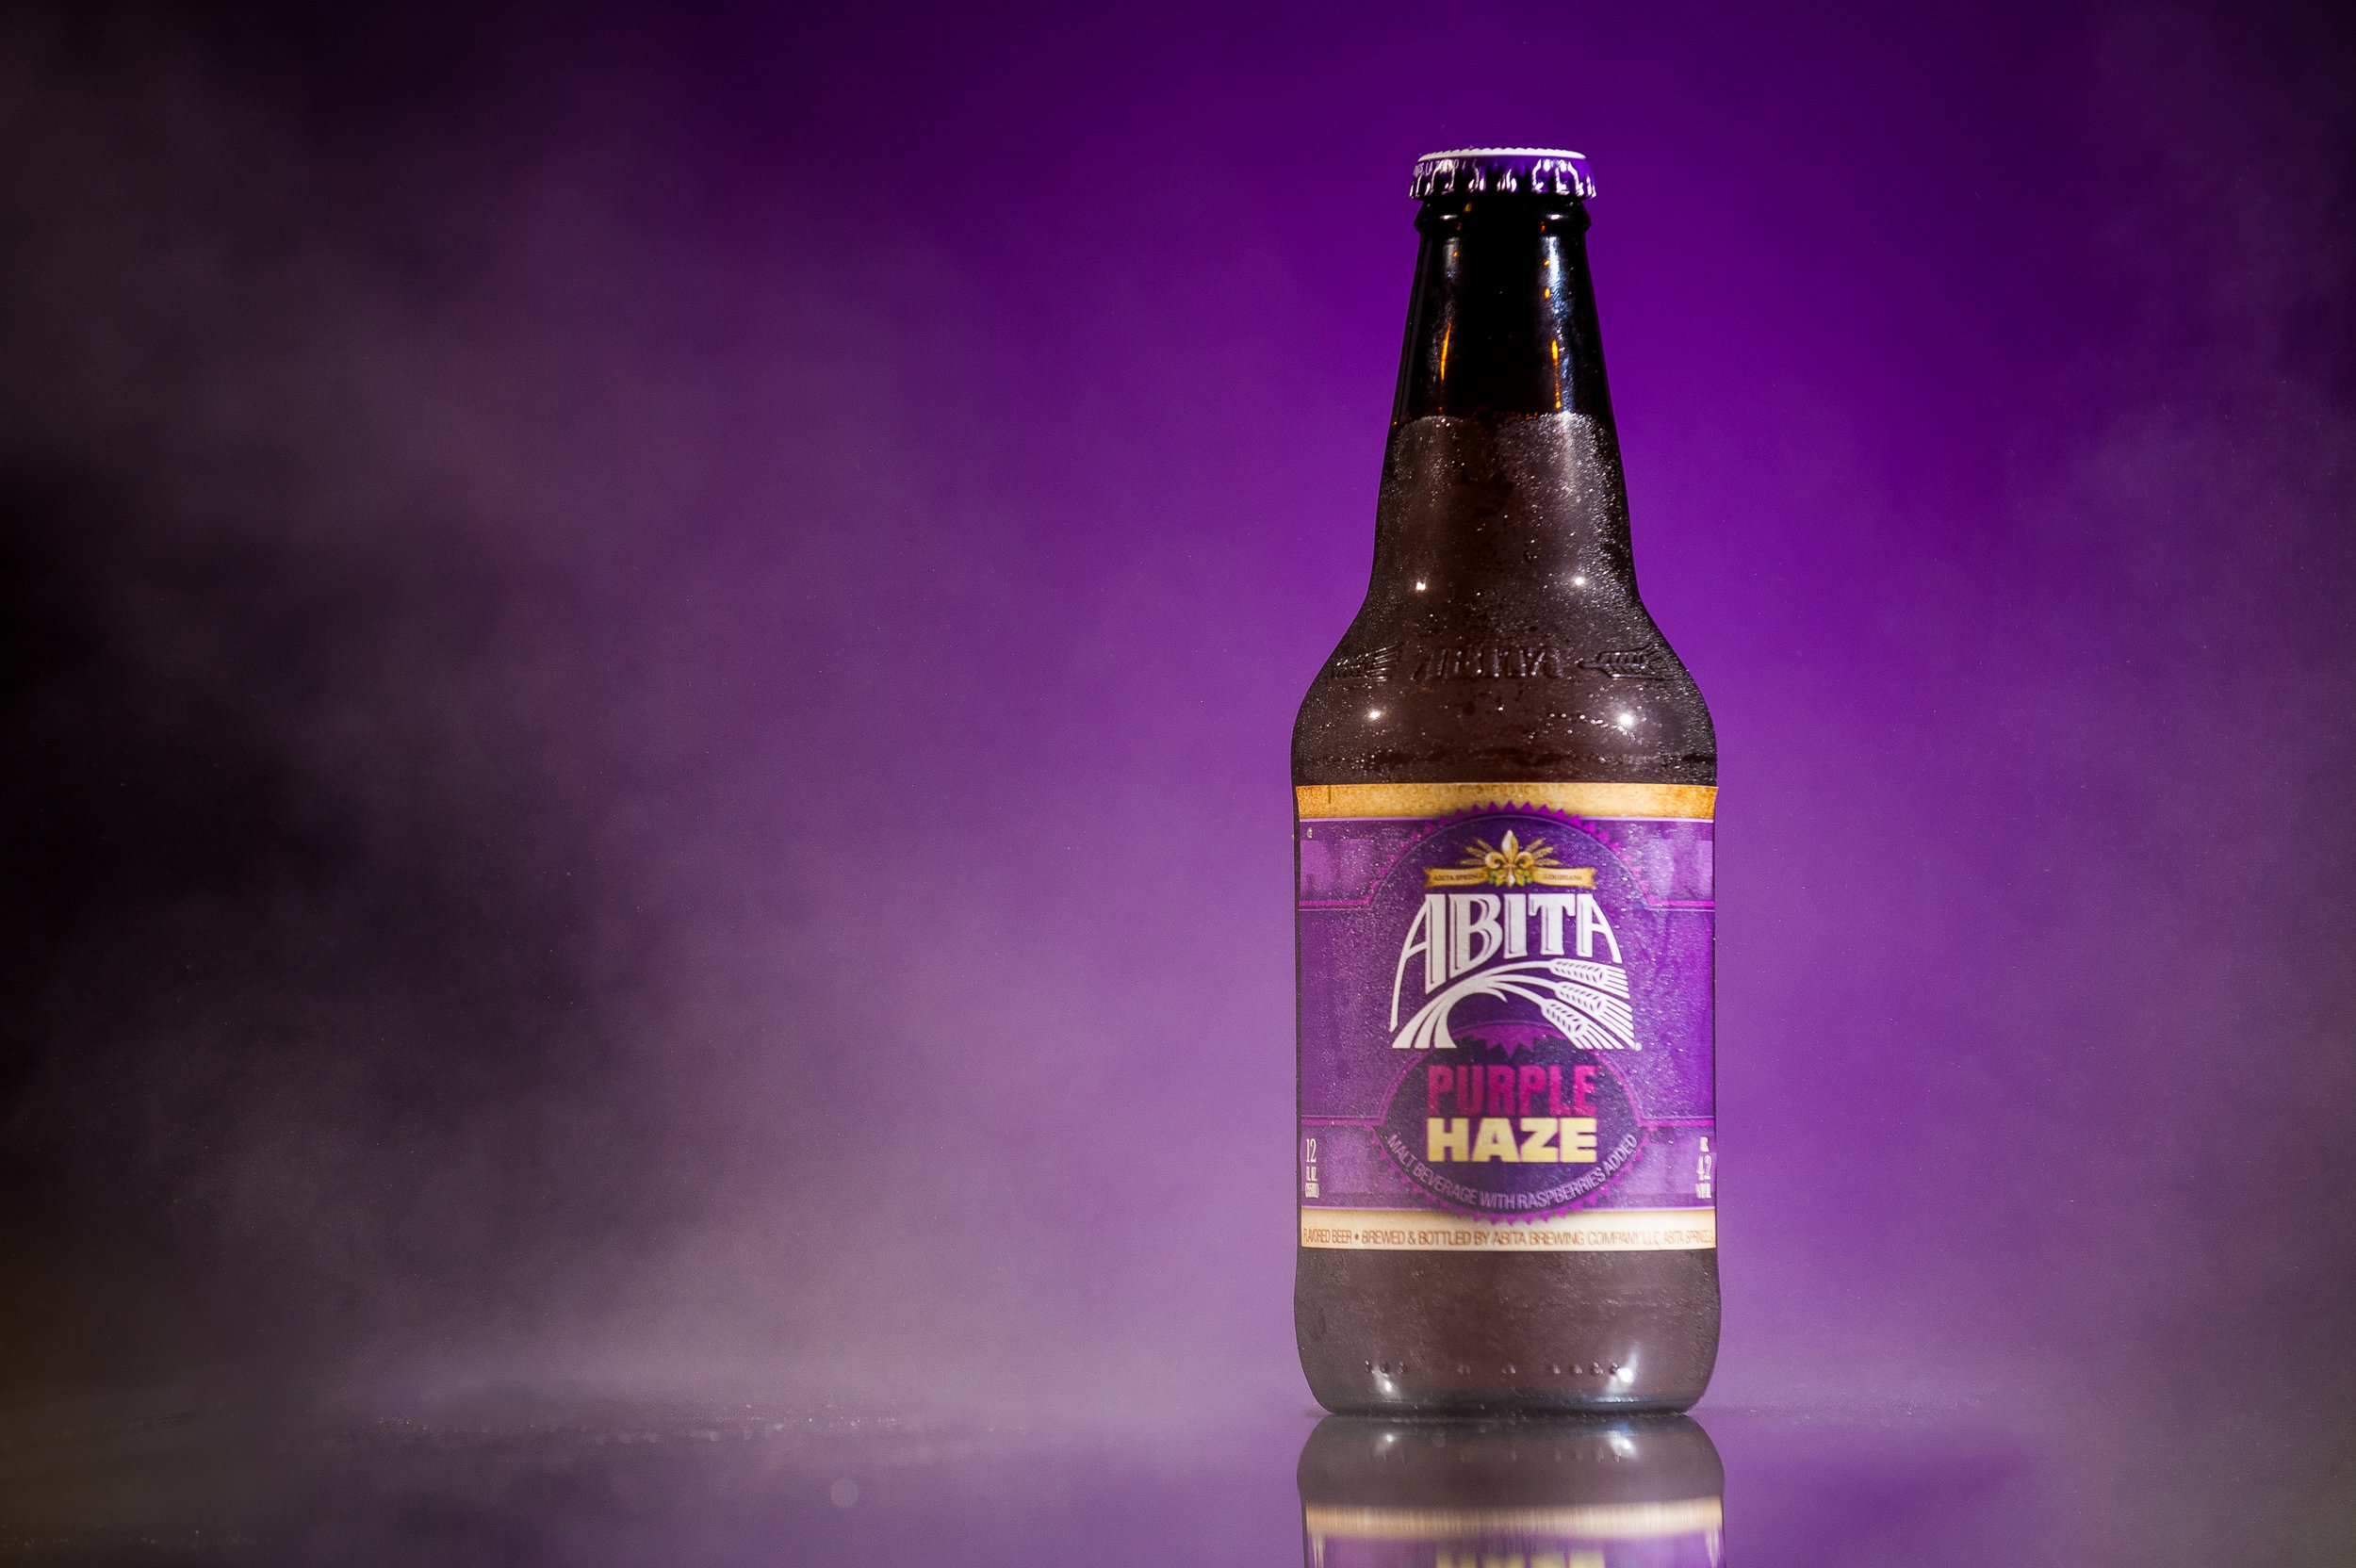 Abita Purple Haze  gets the spotlight in this favorite image from 2017!